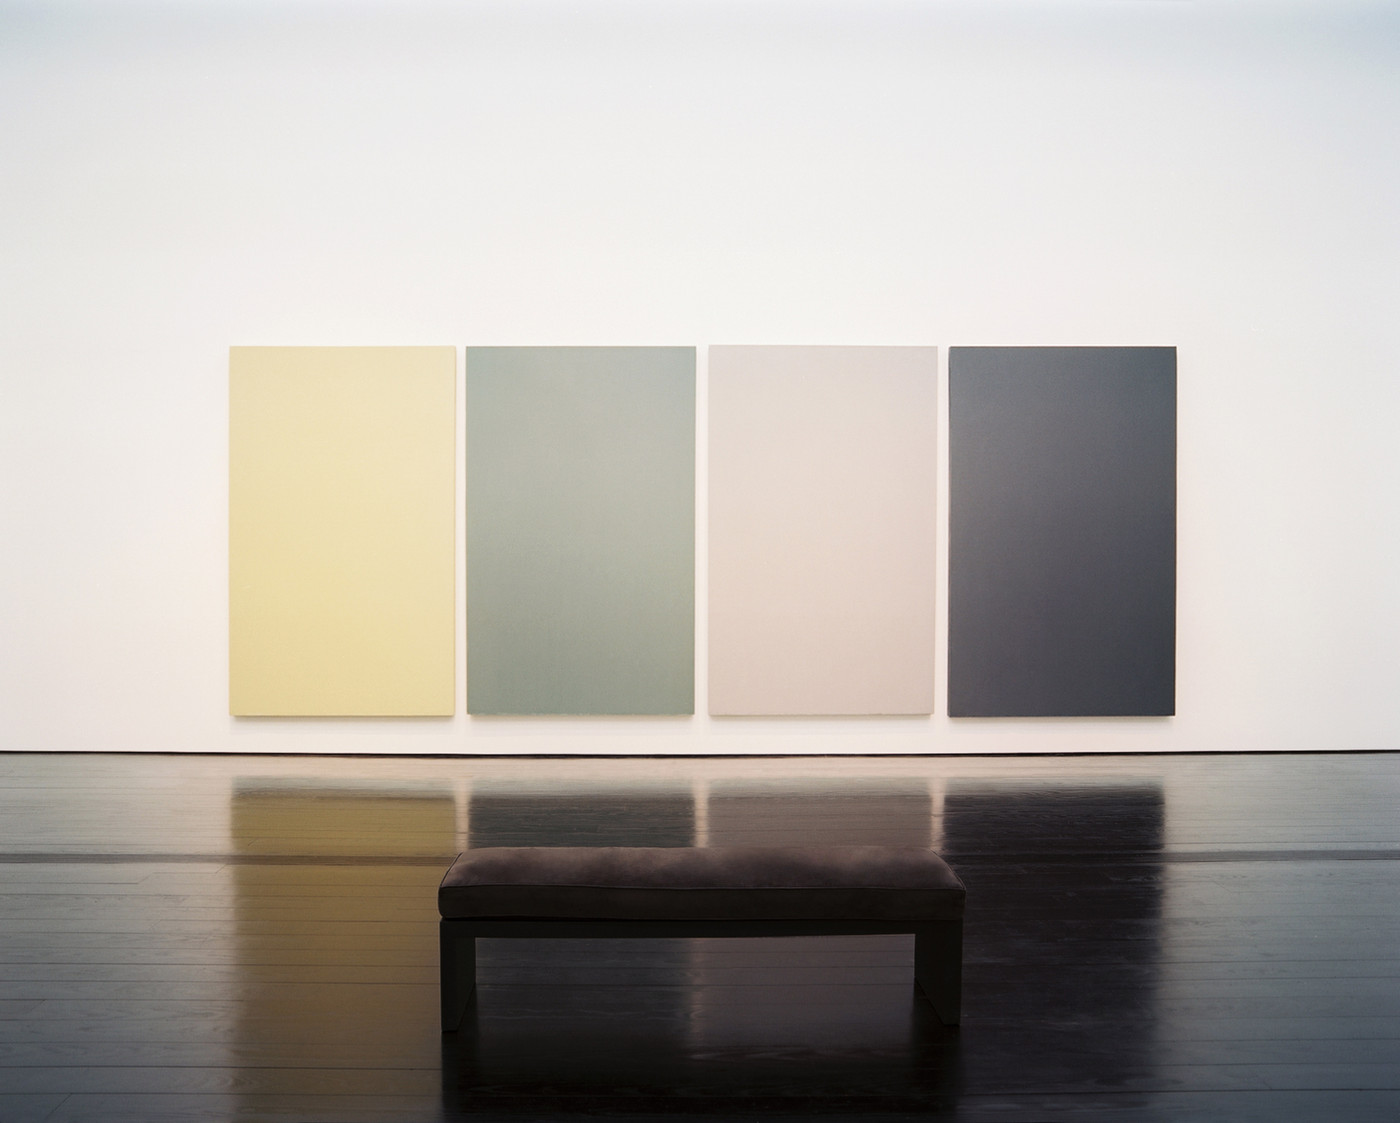 Brice Marden, The Seasons, 1974 - 75